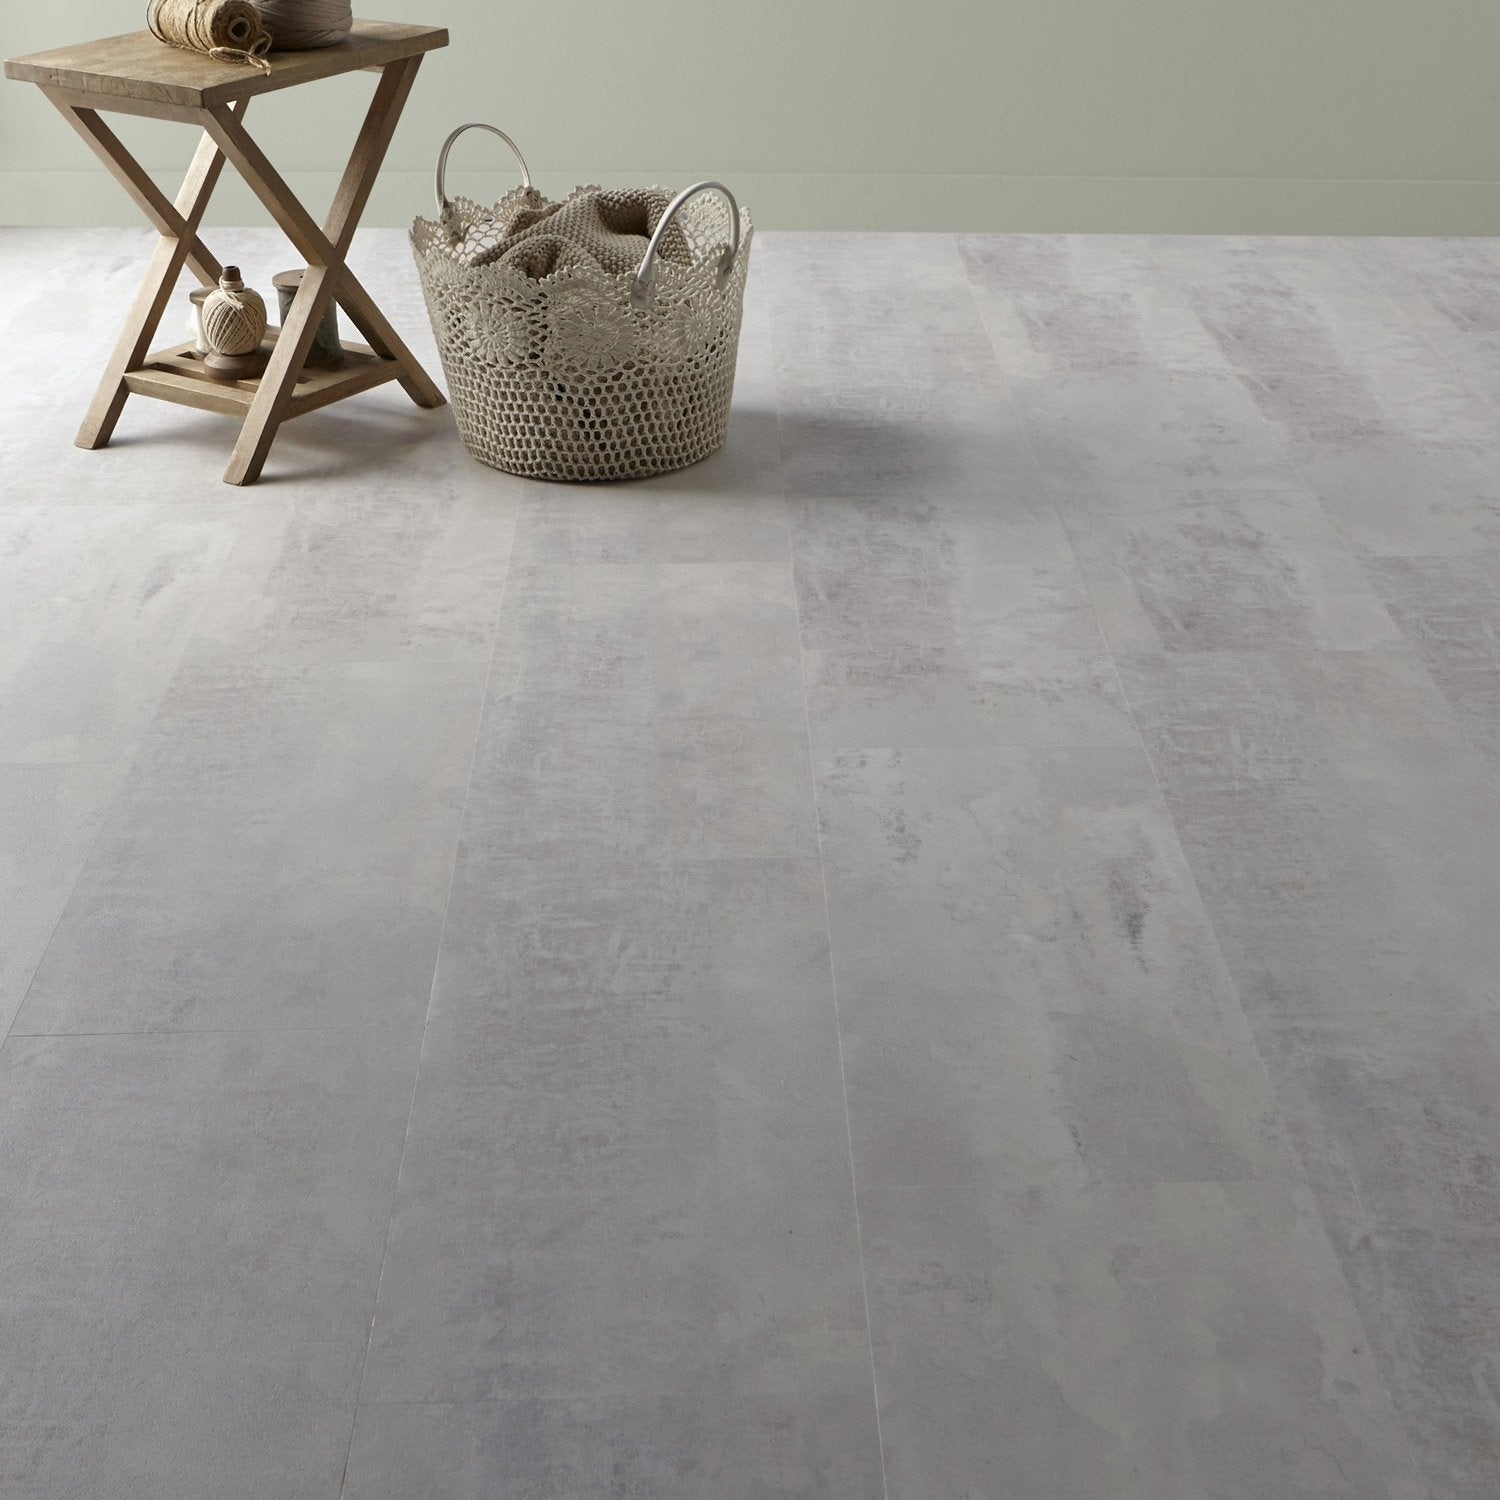 Dalle pvc clipsable gris gotha clear senso lock gerflor for Plancher chauffant salle de bain